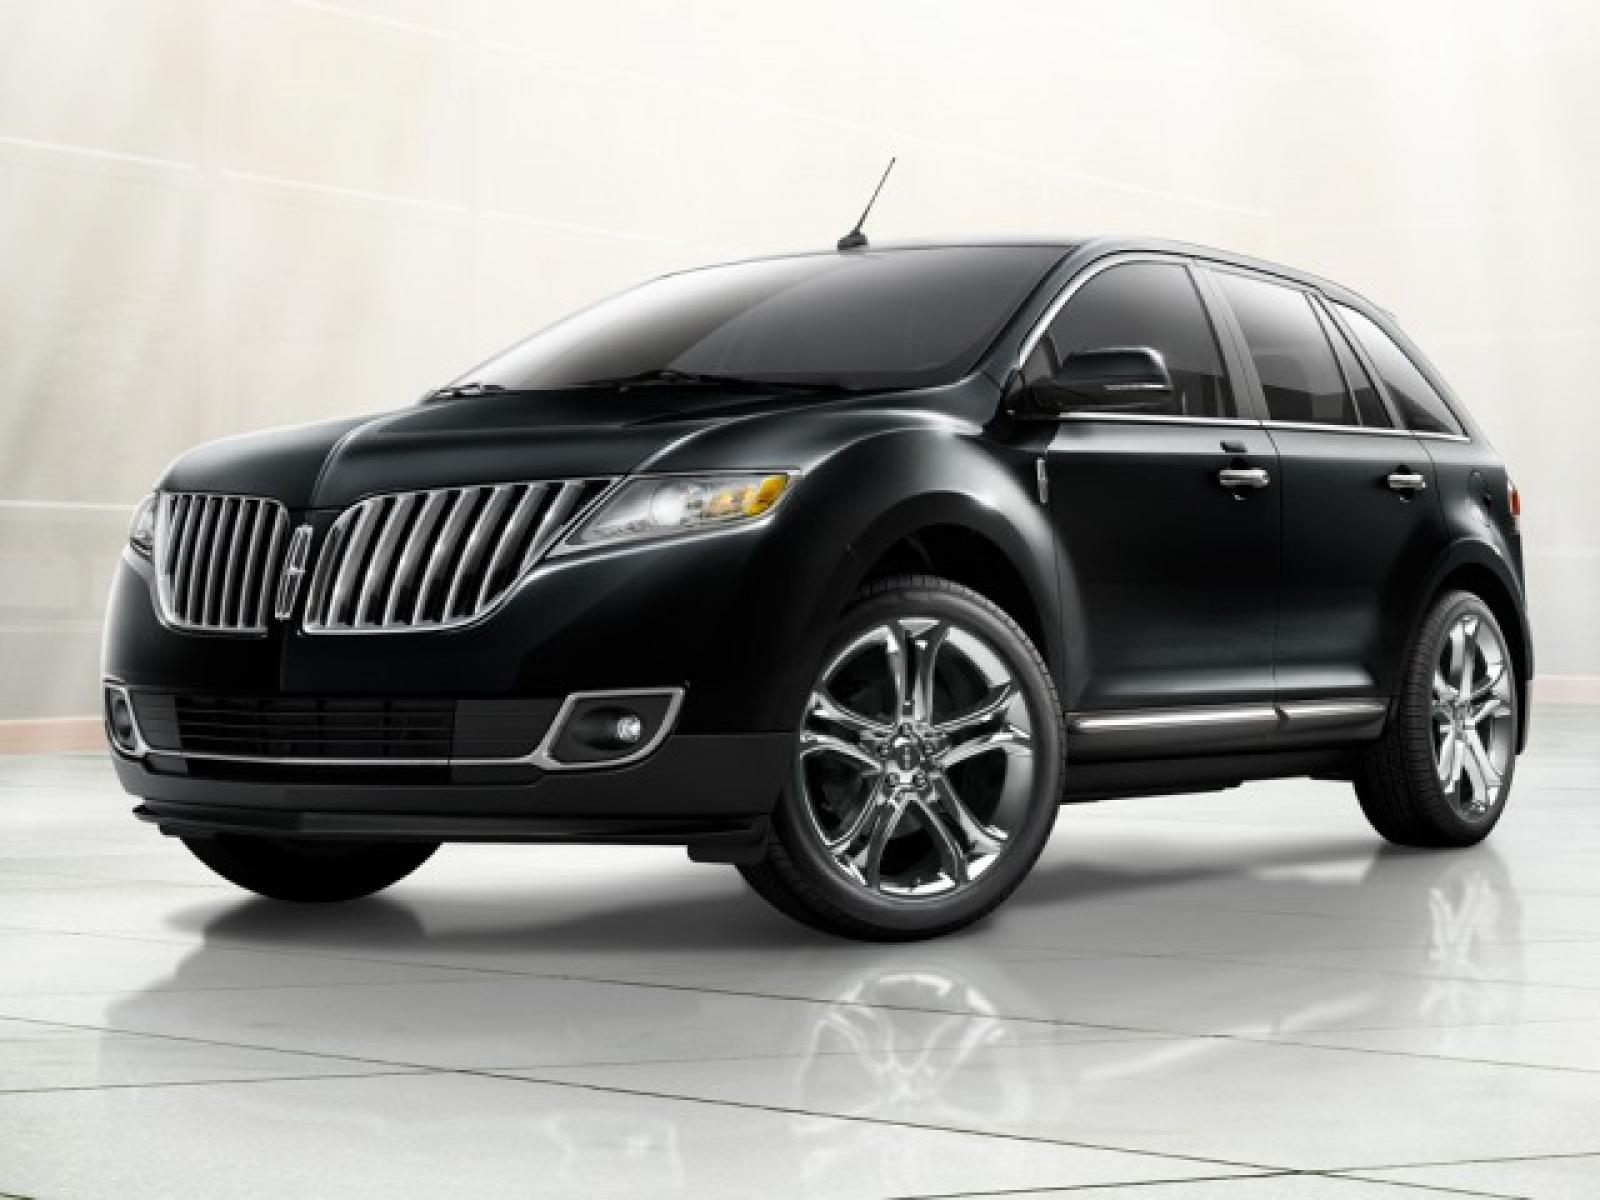 cars listing mkx awd buds for in suv lincoln img used auto michigan sale